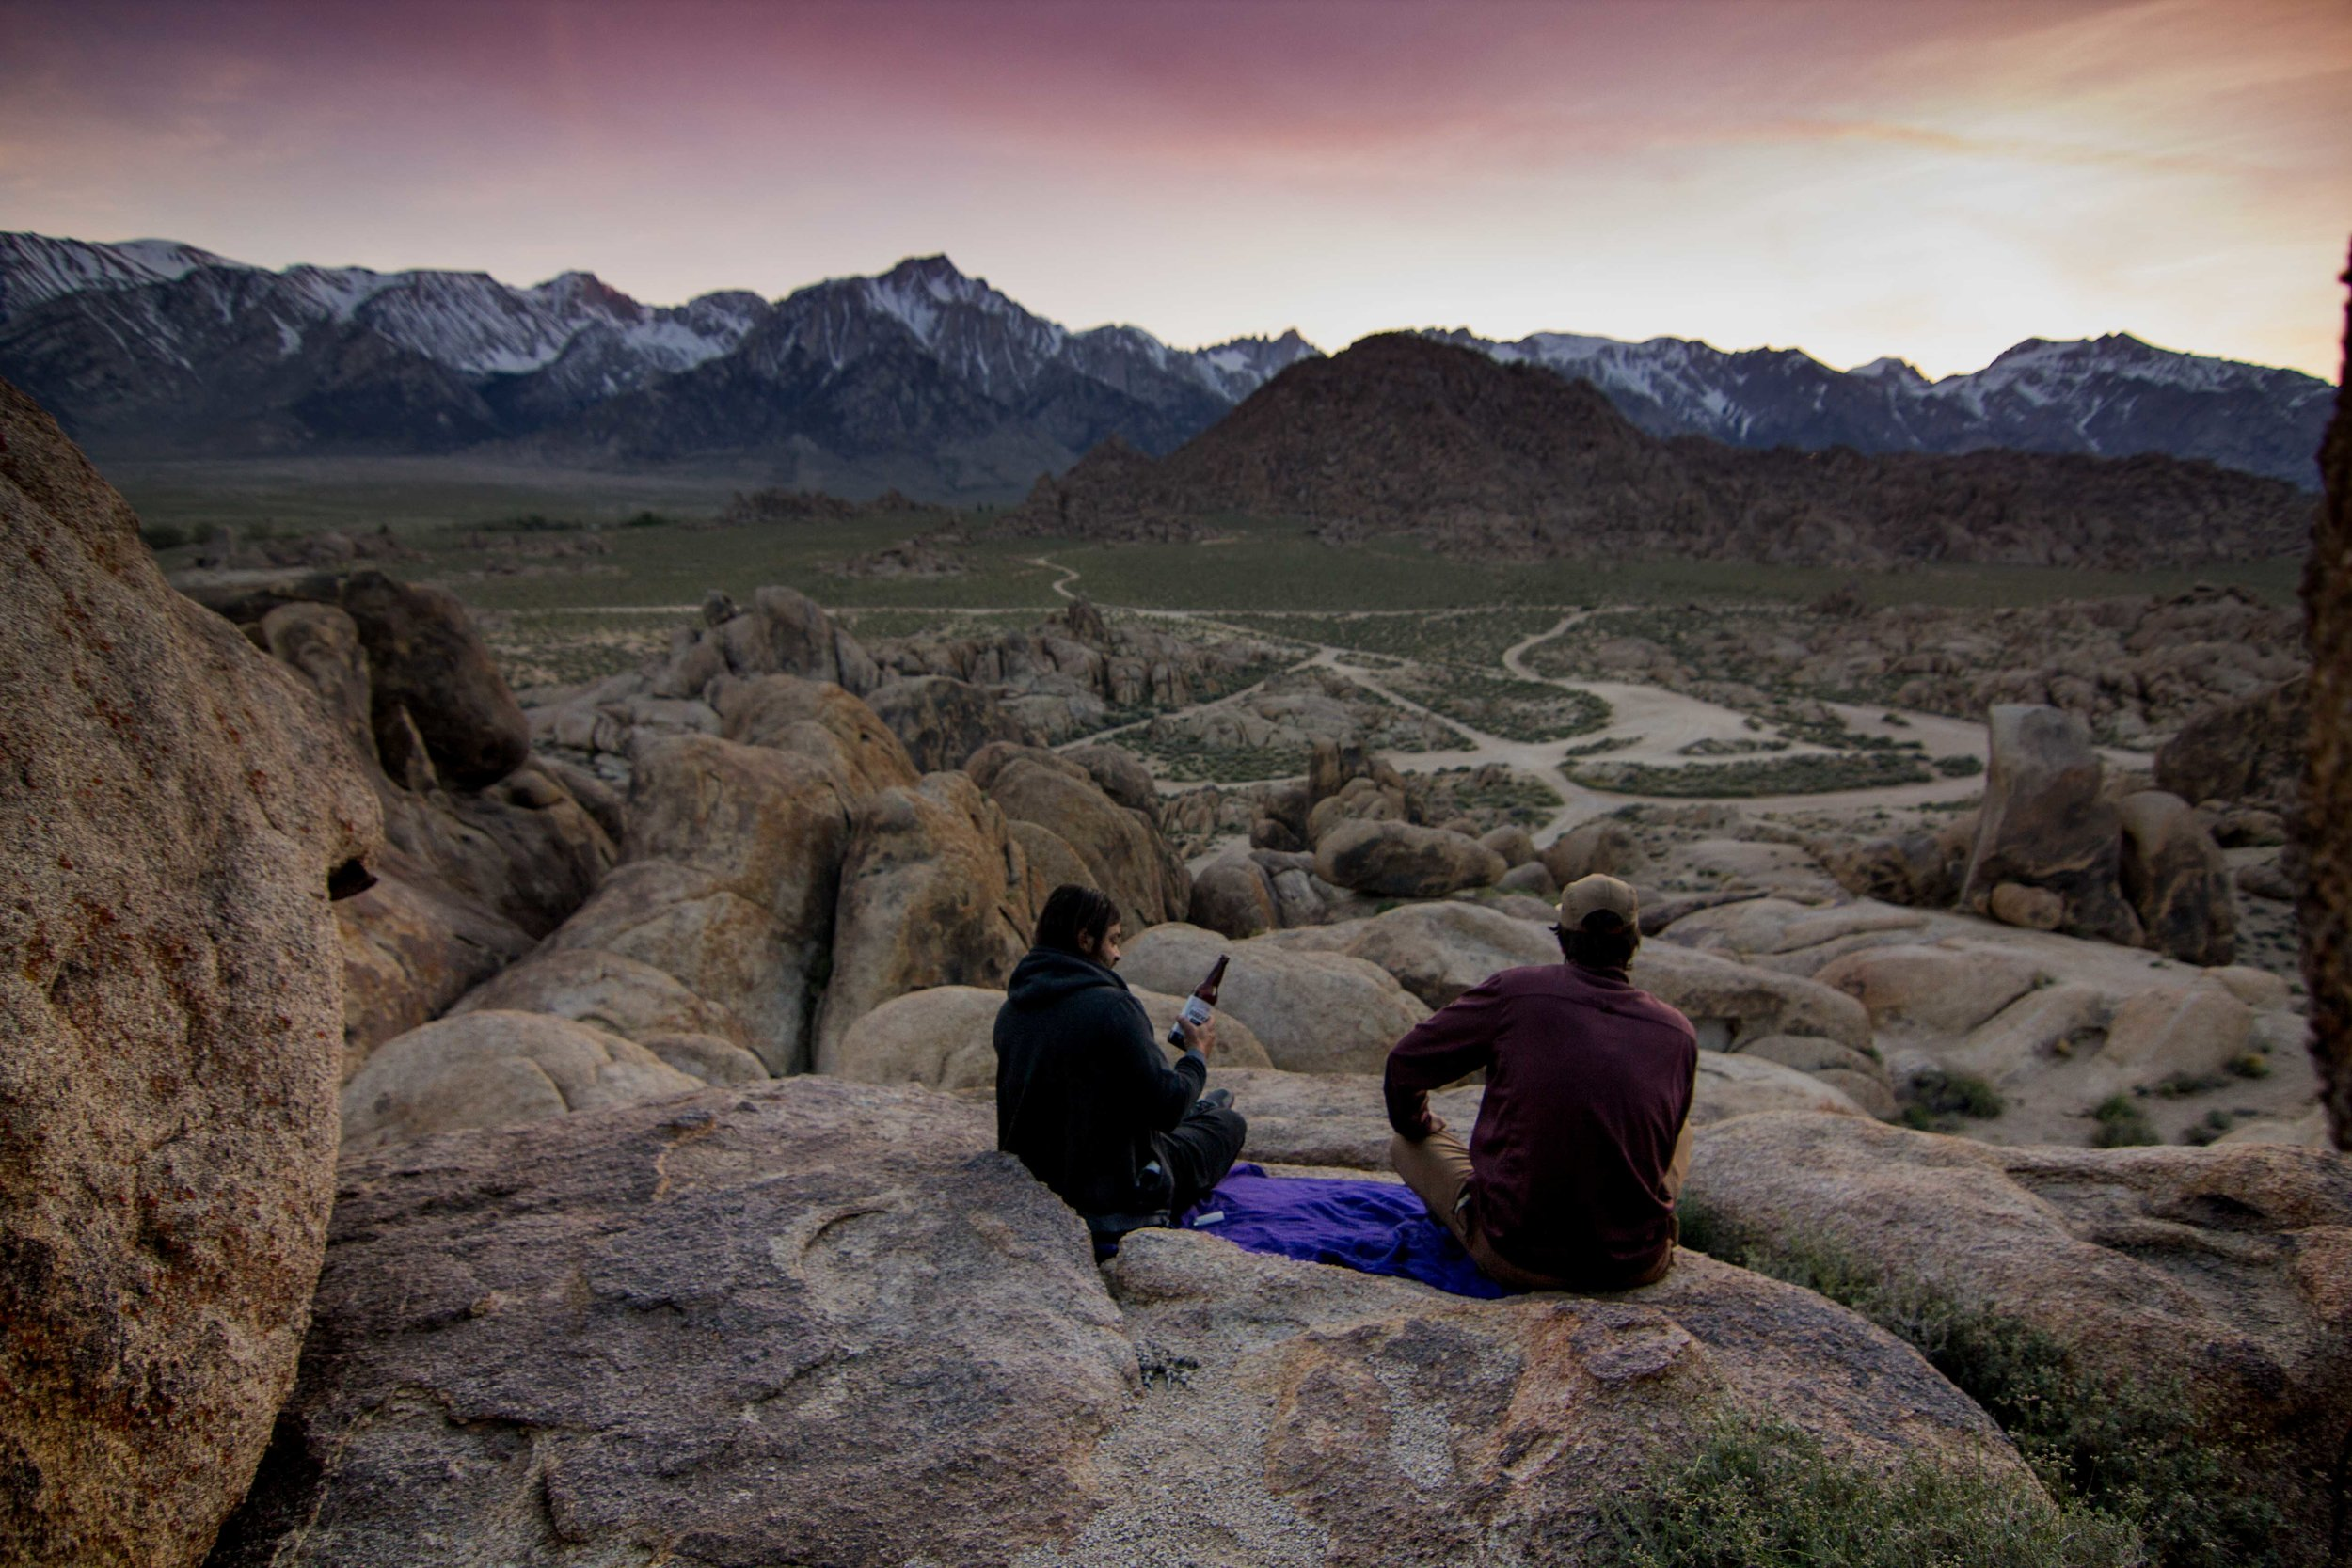 Alabama Hills Free Camping BLM Land Vanlife (3 of 9).jpg